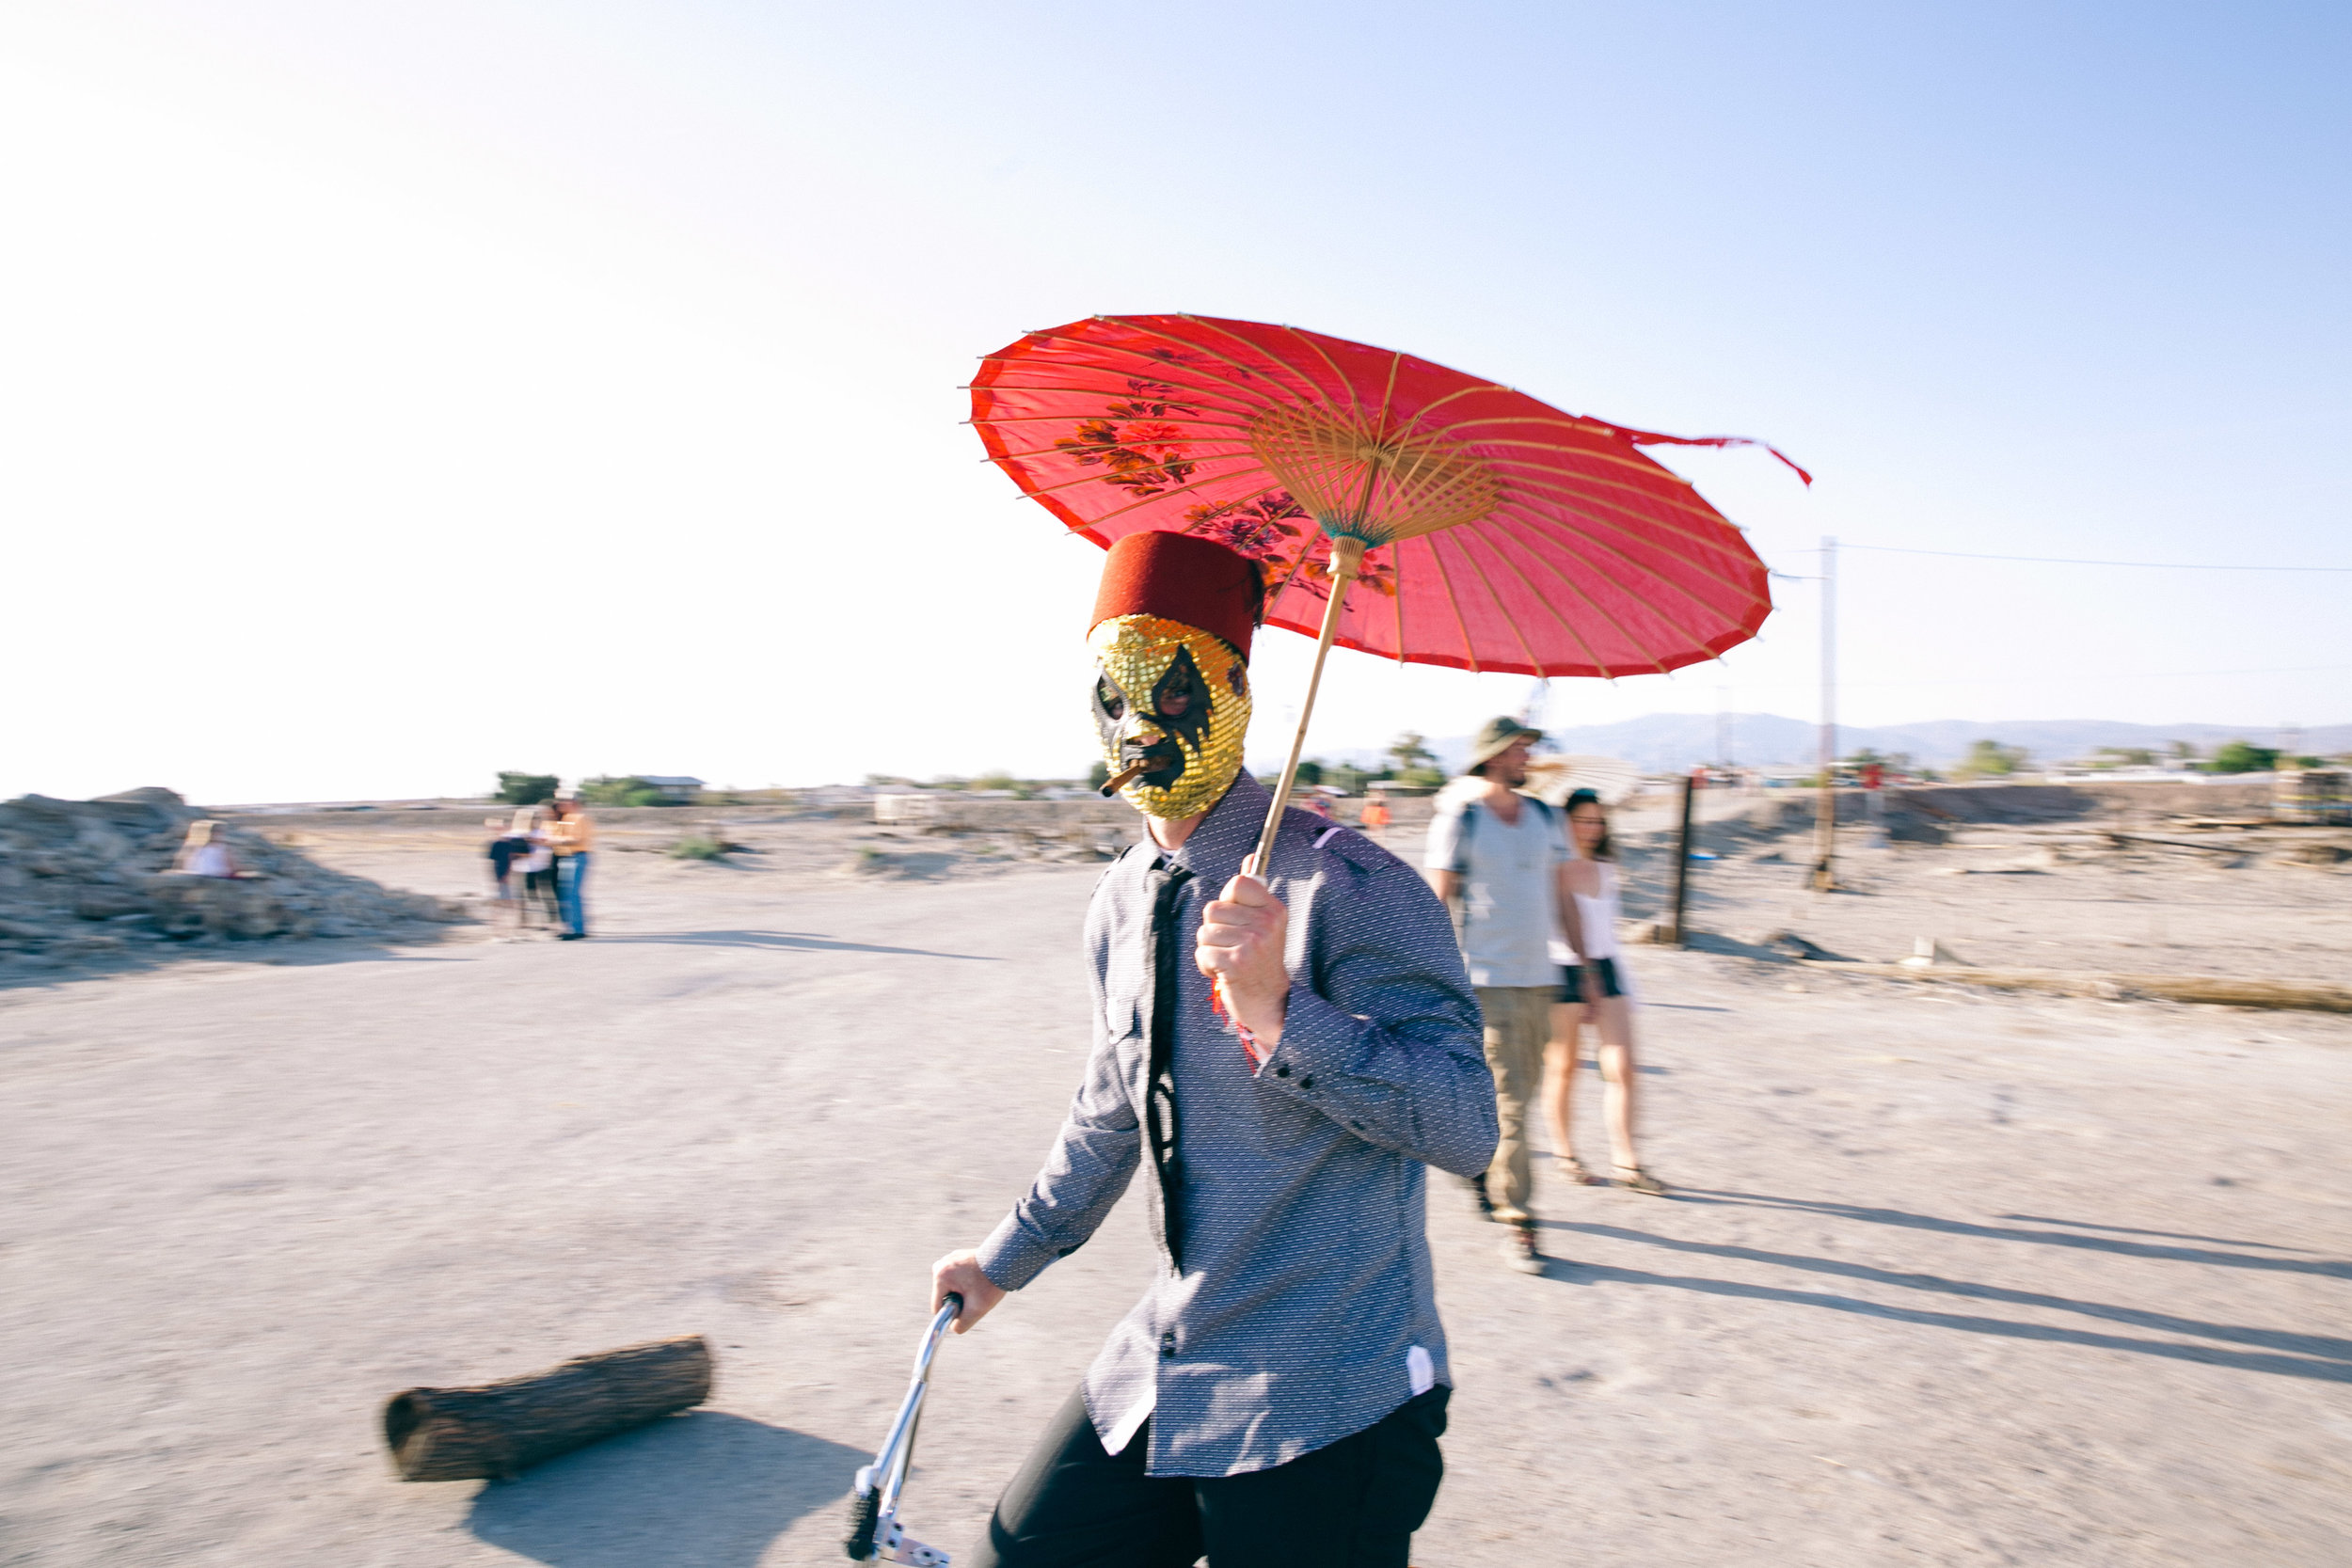 bbb_frank_web_070_Masked attendee at the Beach Club.  Bombay Beach Biennale 2017.jpg